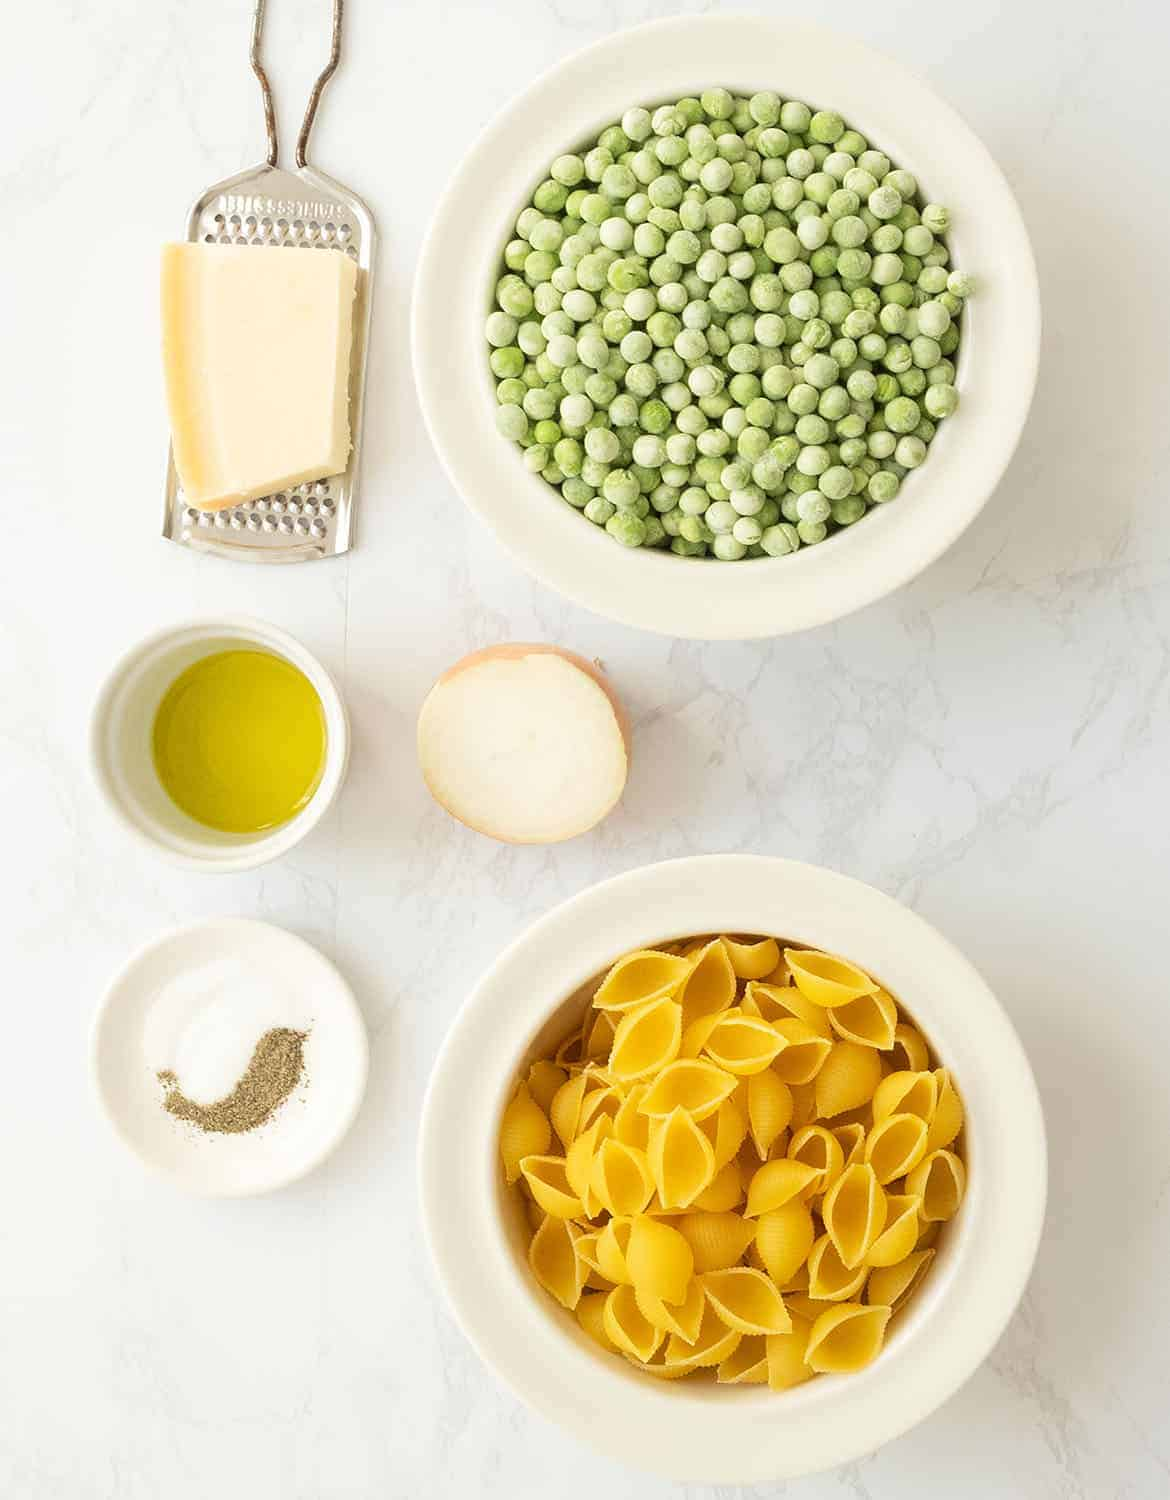 What you need to make this pasta with peas: pasta, peas, cheese, olive oil, onion, salt and pepper.